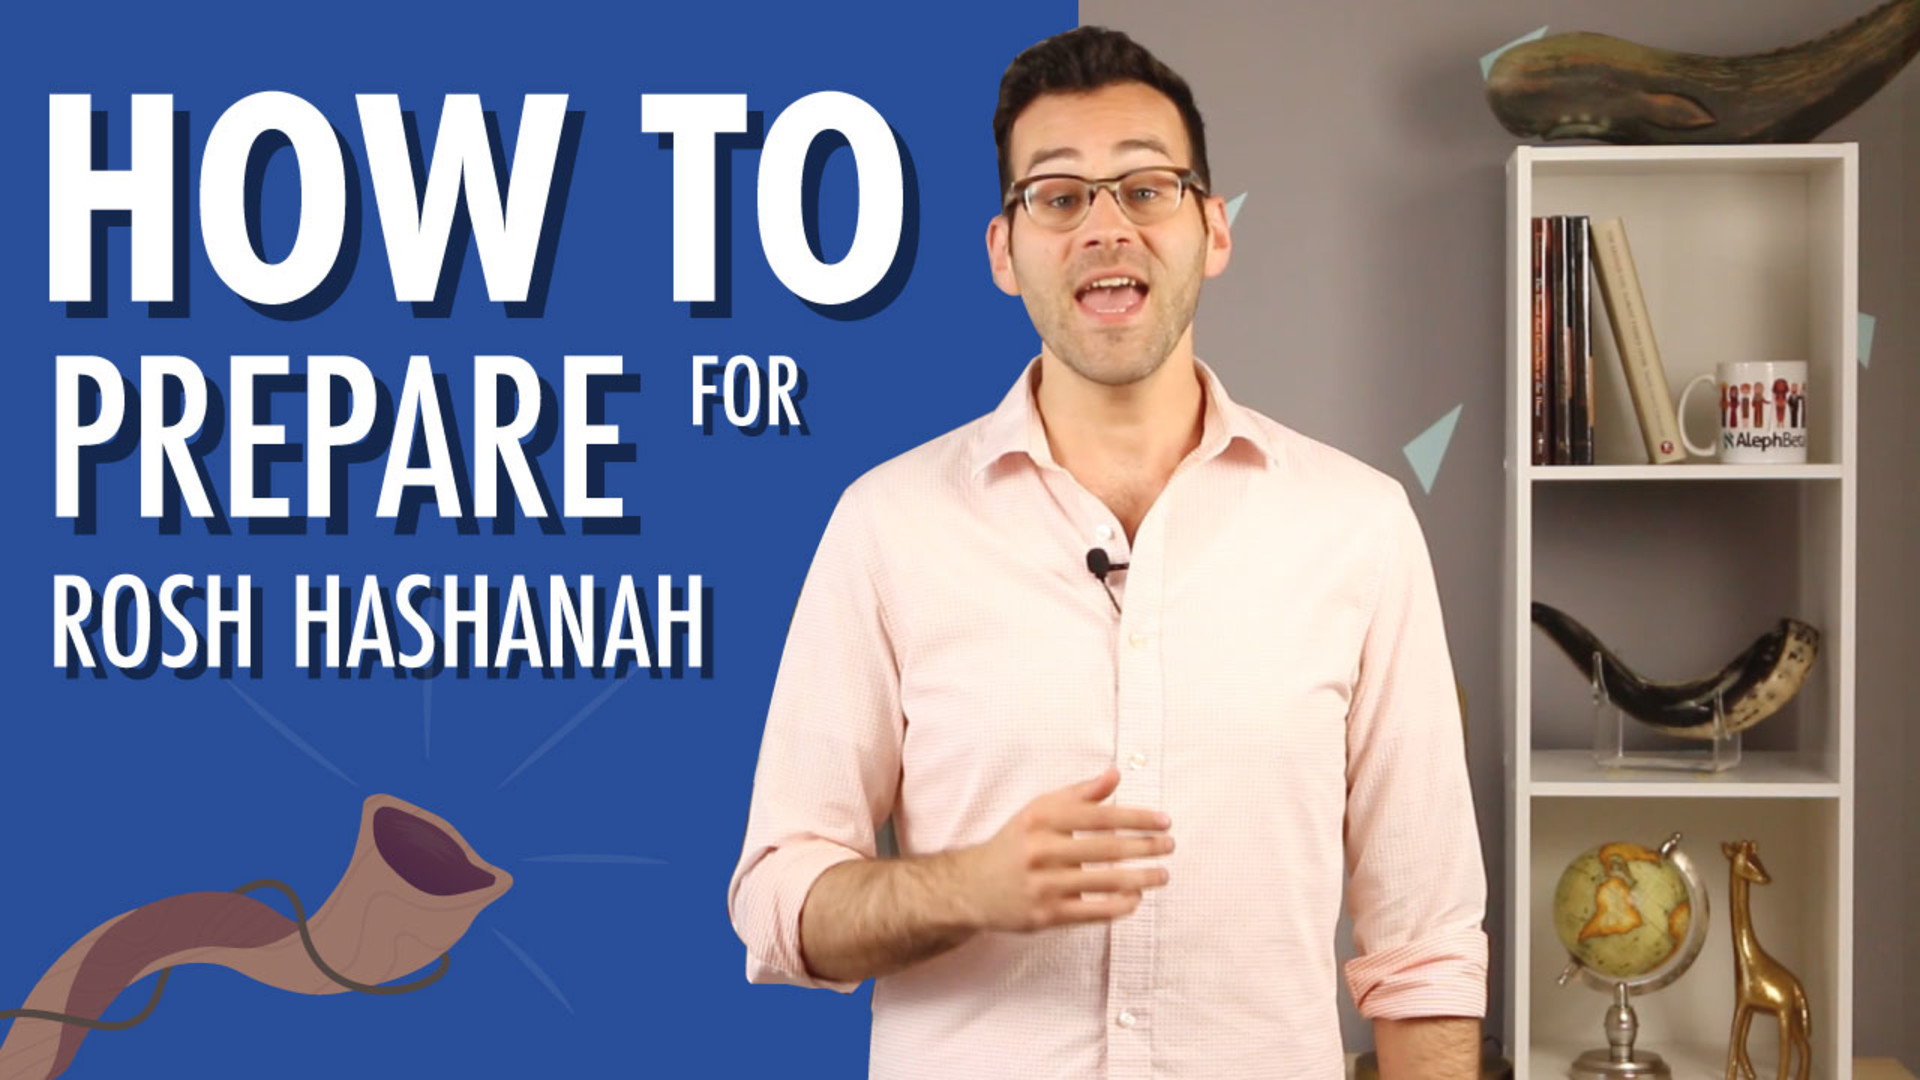 what is Rosh Hashanah about